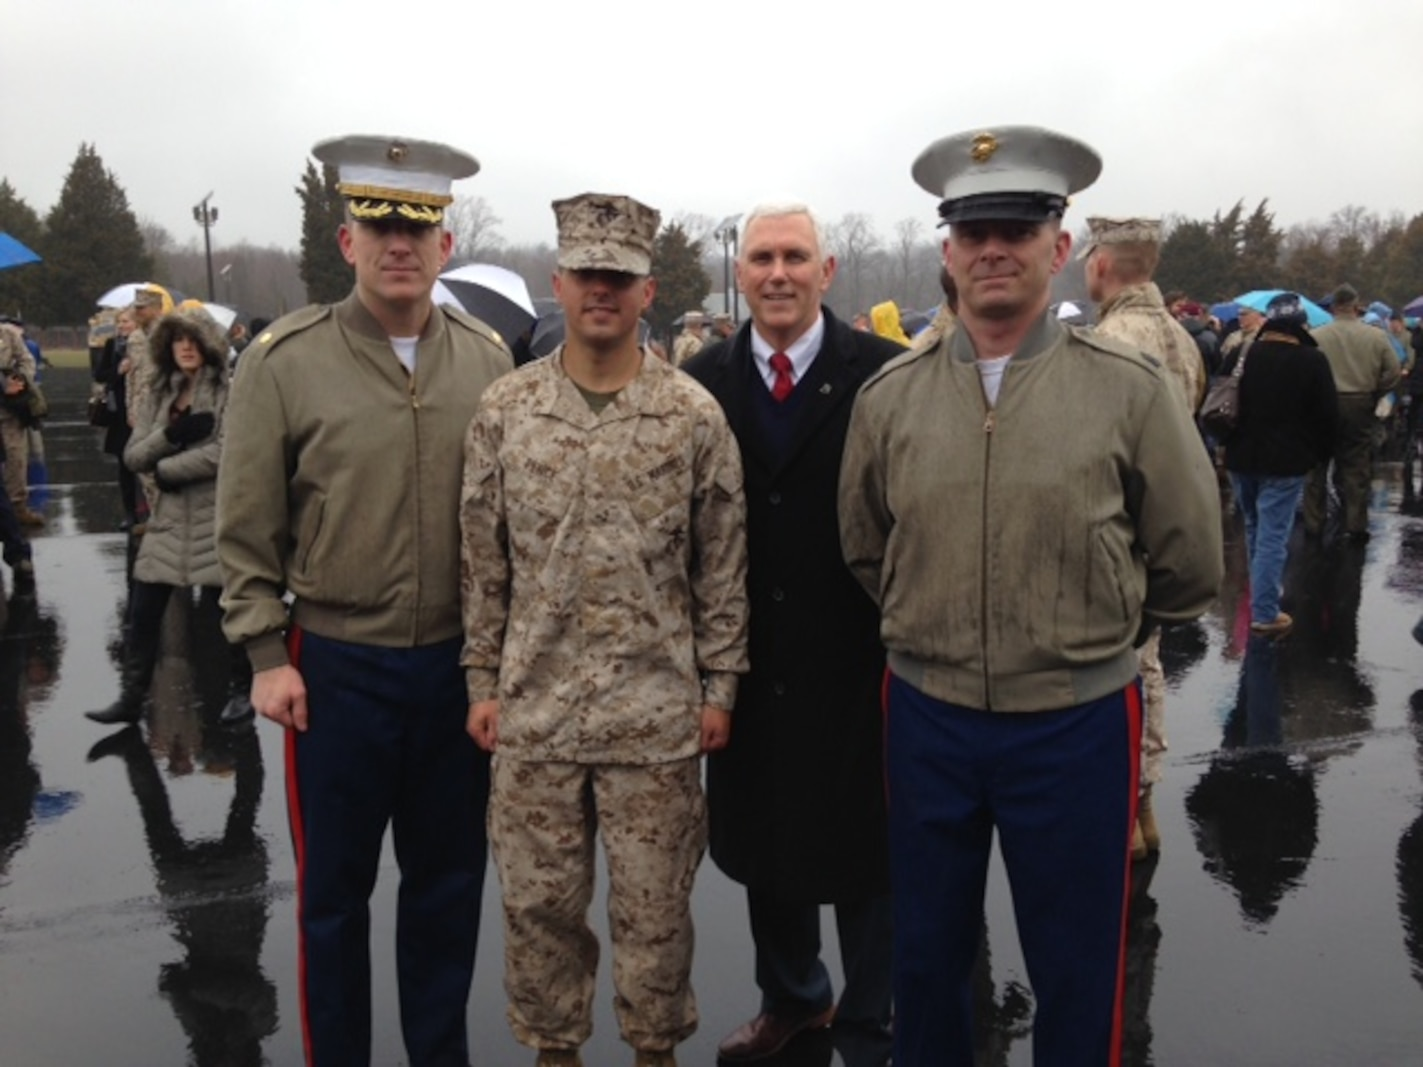 Indiana Gov. Mike Pence, second from right, joins his son, Marine 2nd Lt. Michael J. Pence, second from left, along with Maj. Geoffry M. Hollopeter, left, Recruiting Station Indianapolis commanding officer, and Sgt. Maj. Ronald E. Neff, right, RS Indianapolis sergeant major, during Michael Pence's Officer Candidate School graduation aboard Marine Corps Base Quantico, Virginia March 20, 2015. Michael Pence received his commission through OCS after graduating from Purdue University in 2014.